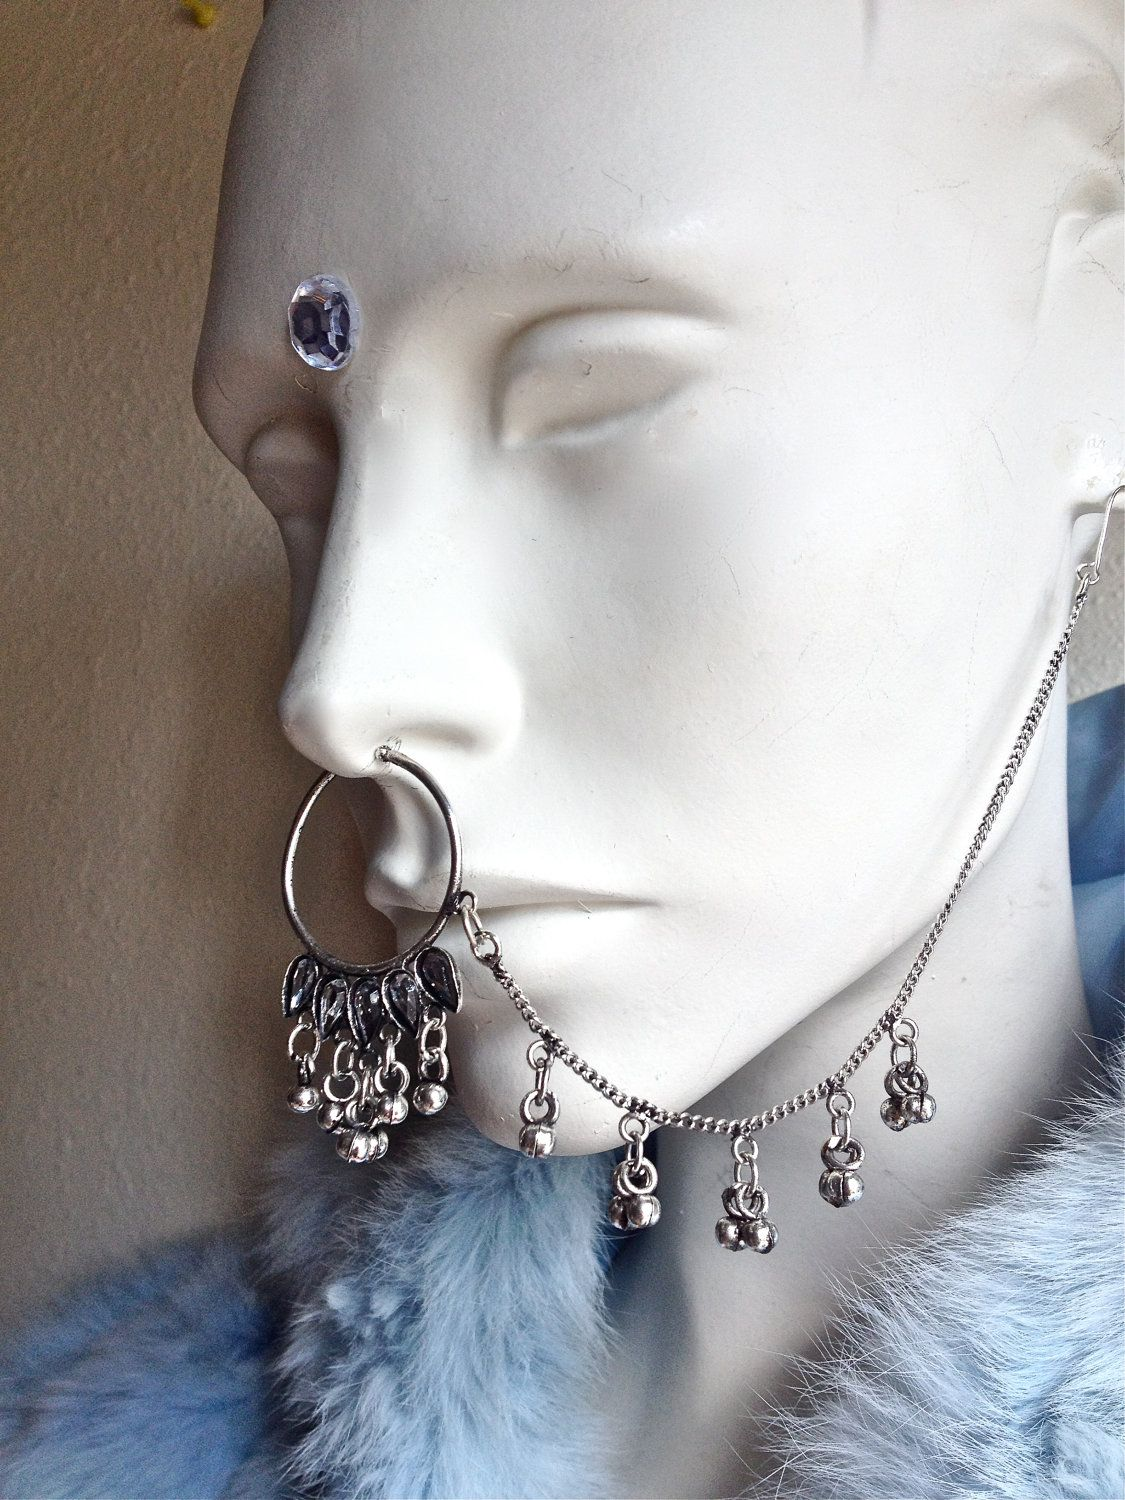 90s nose piercing  us Tribal Nose to Ear Chain Septum Nose Ring with Diamonds and